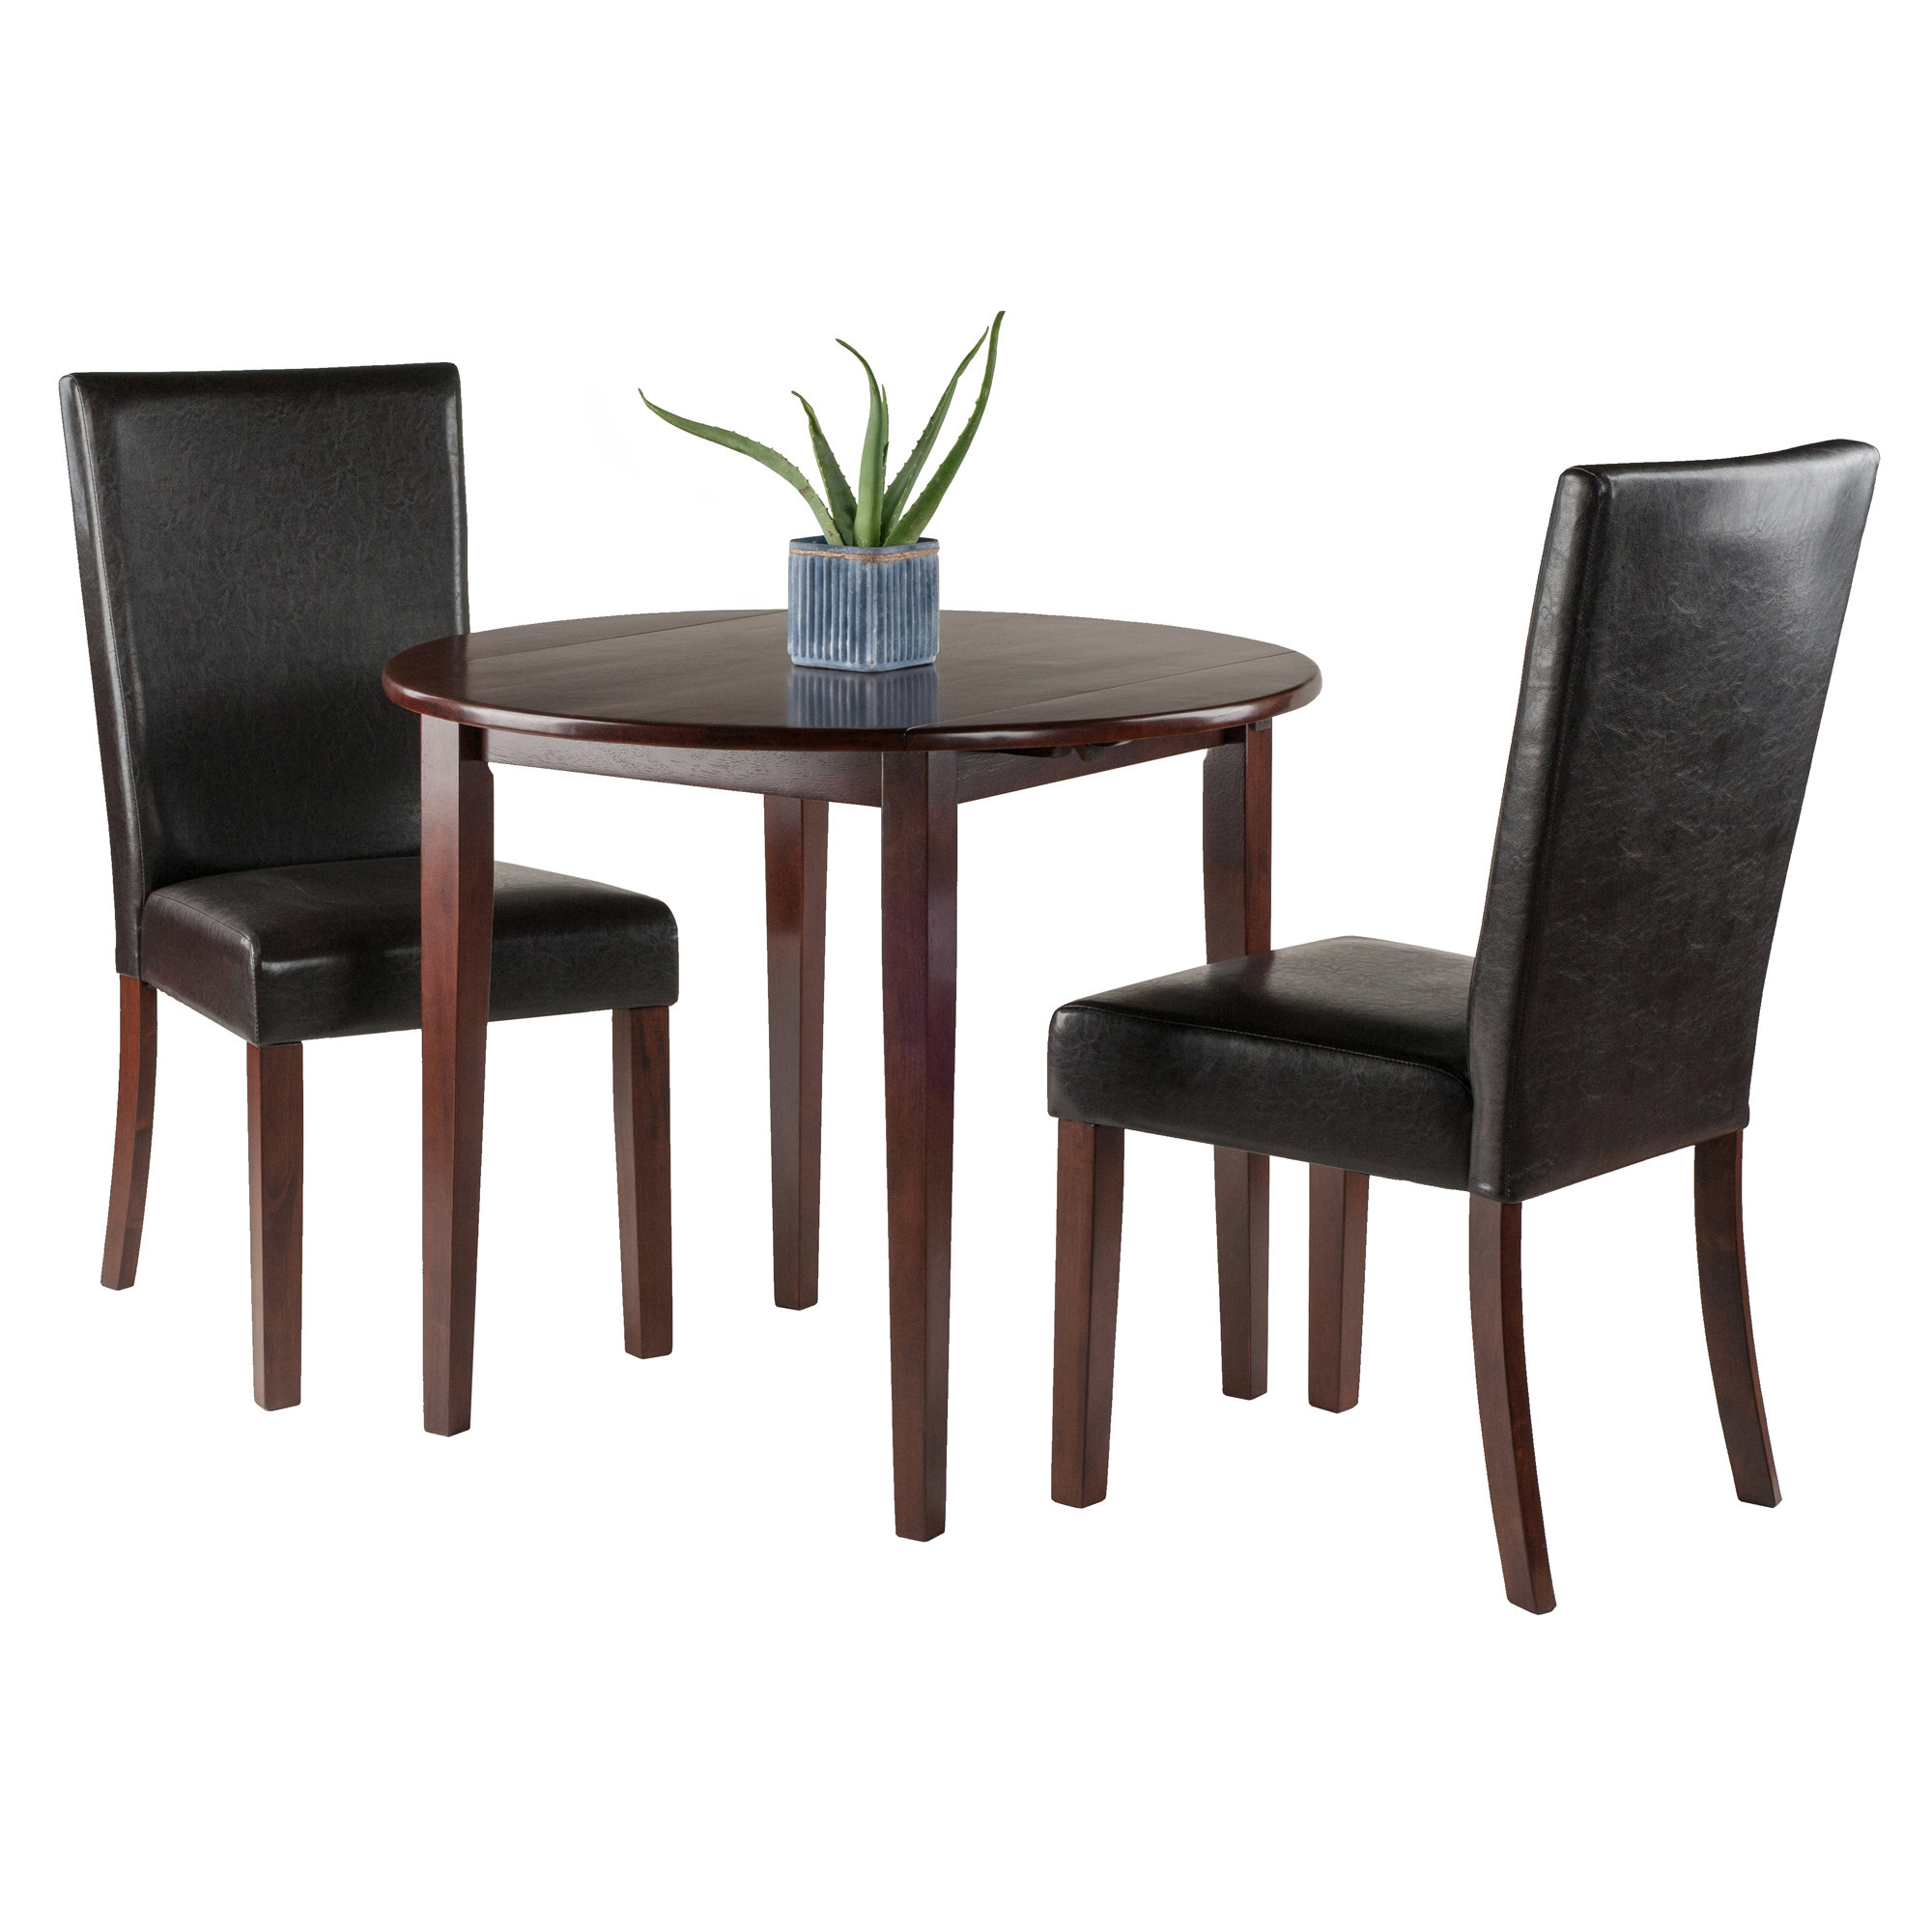 Kendall Traditional 3 Piece Drop Leaf Dining Set Intended For 2017 Baillie 3 Piece Dining Sets (Image 9 of 20)